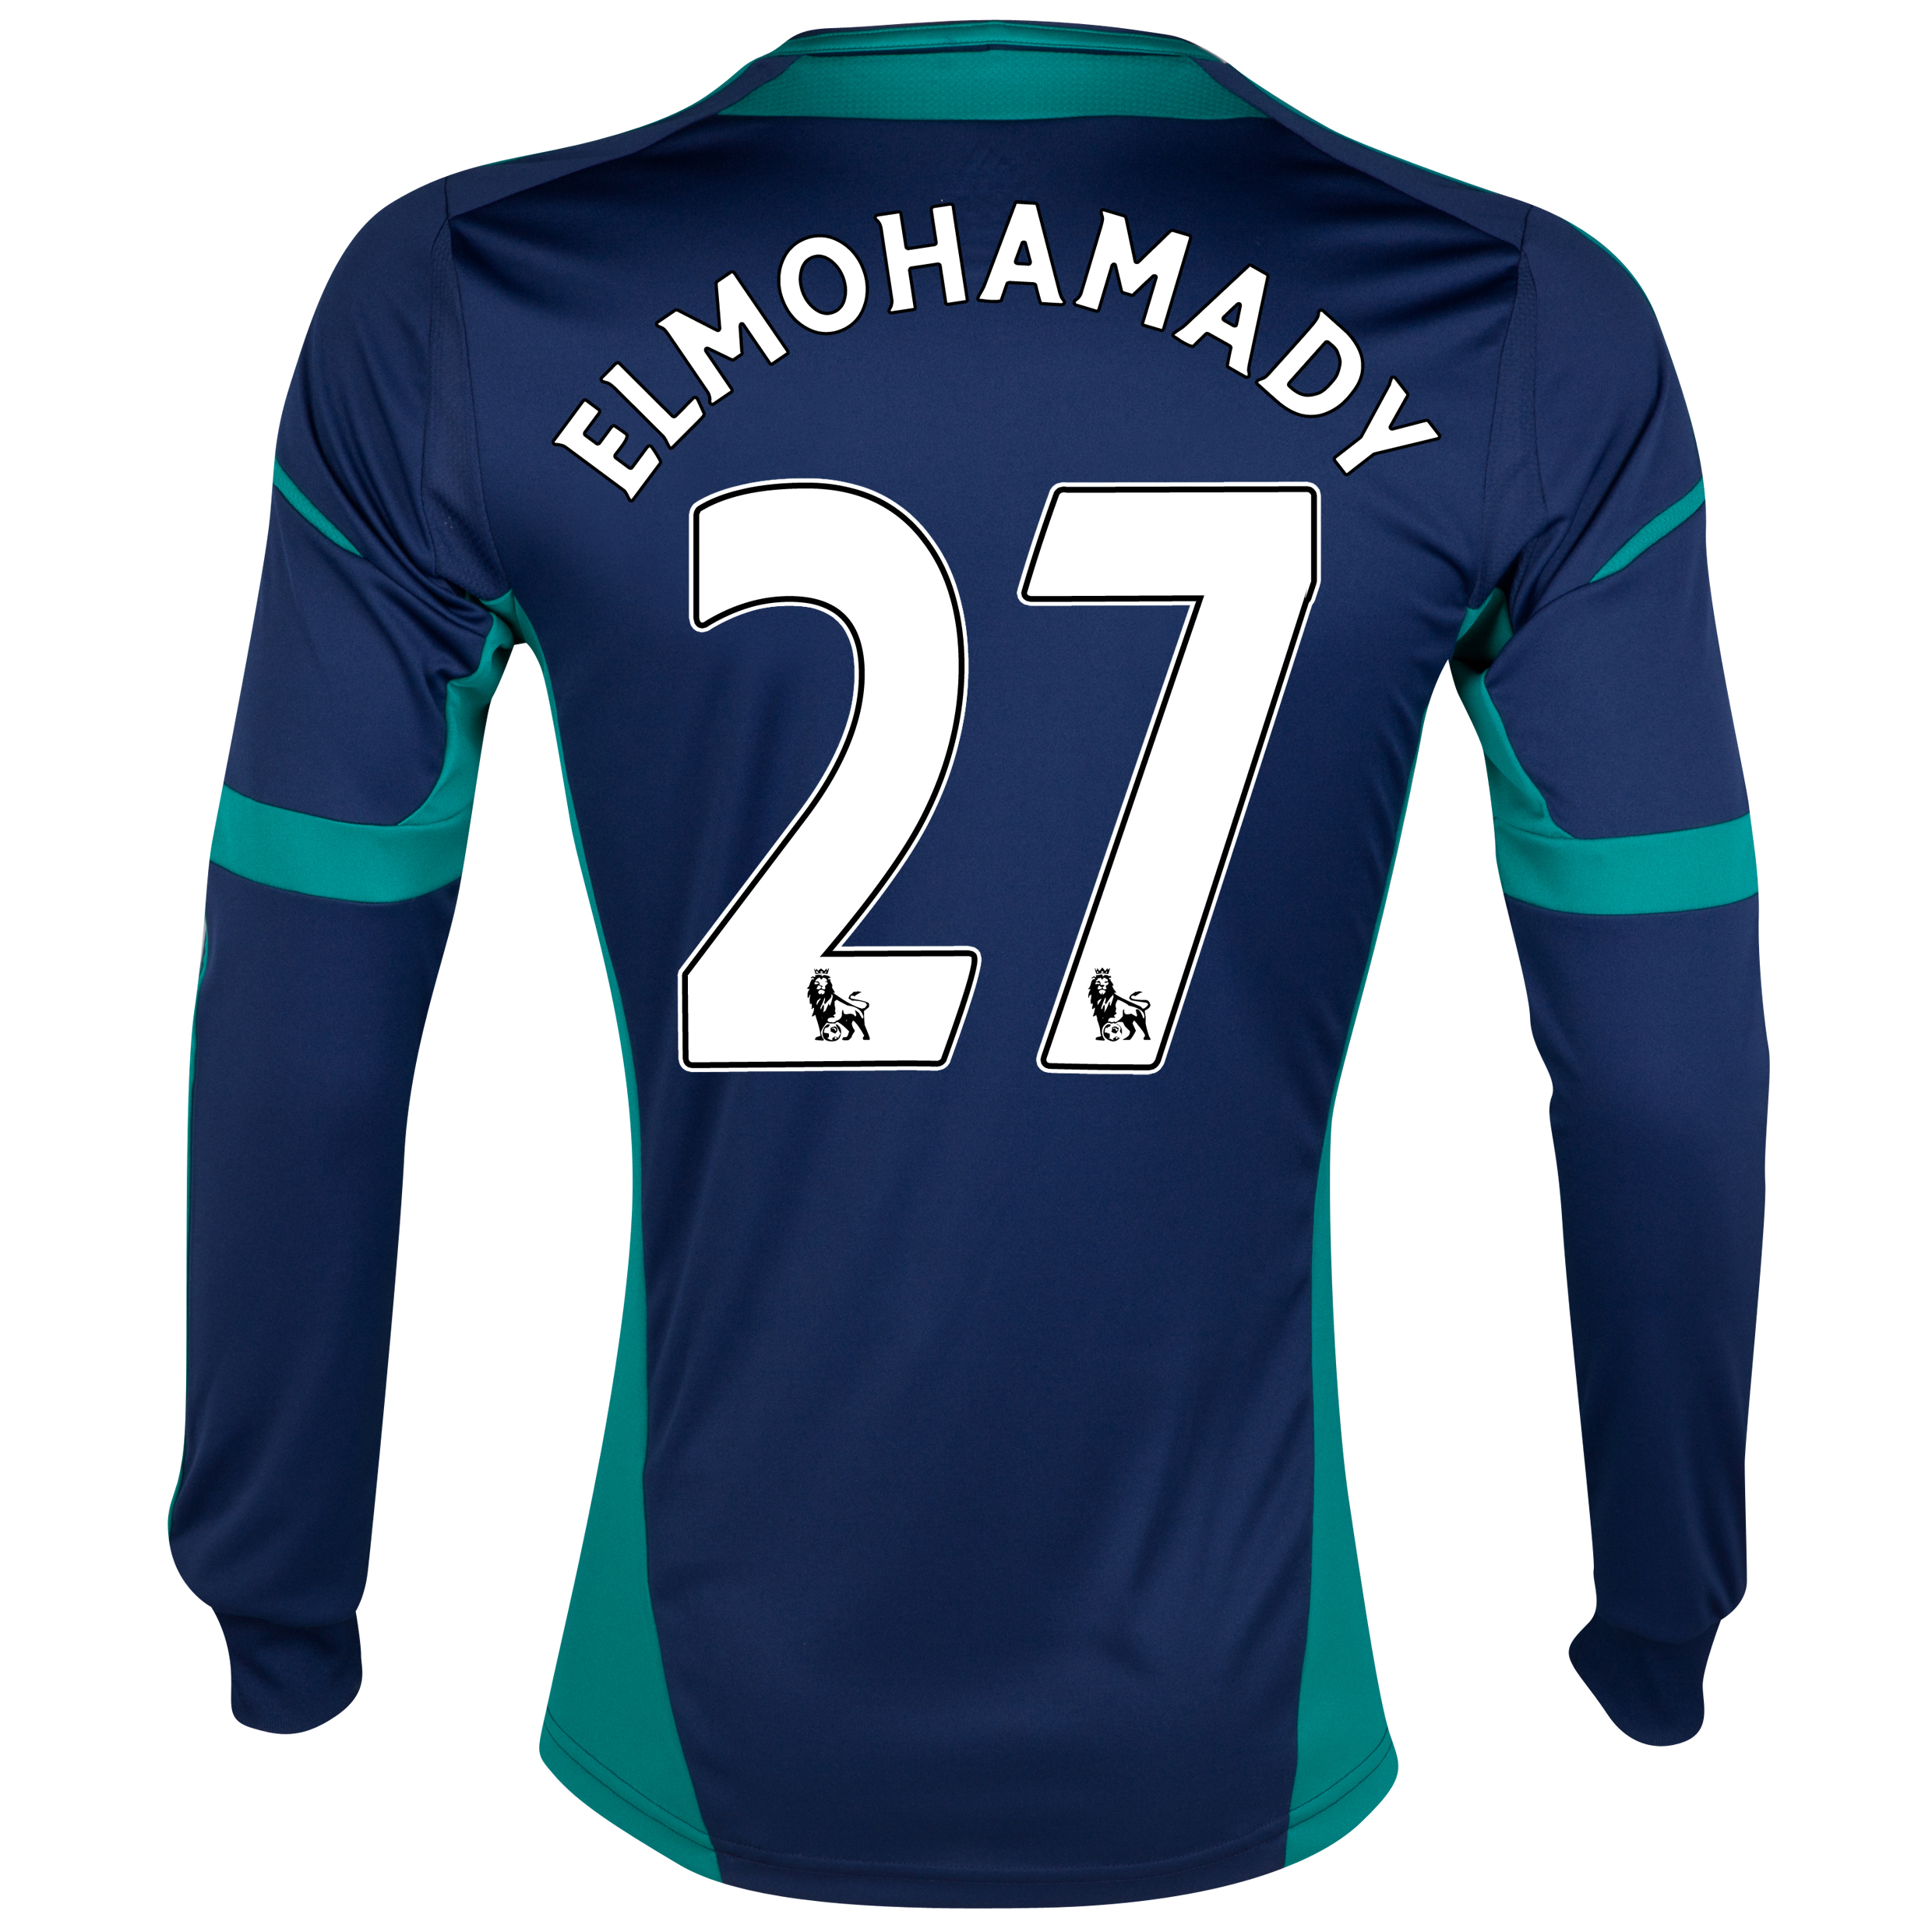 Sunderland Away Shirt 2012/13 - Long Sleeved - Junior with Elmohamady 27 printing